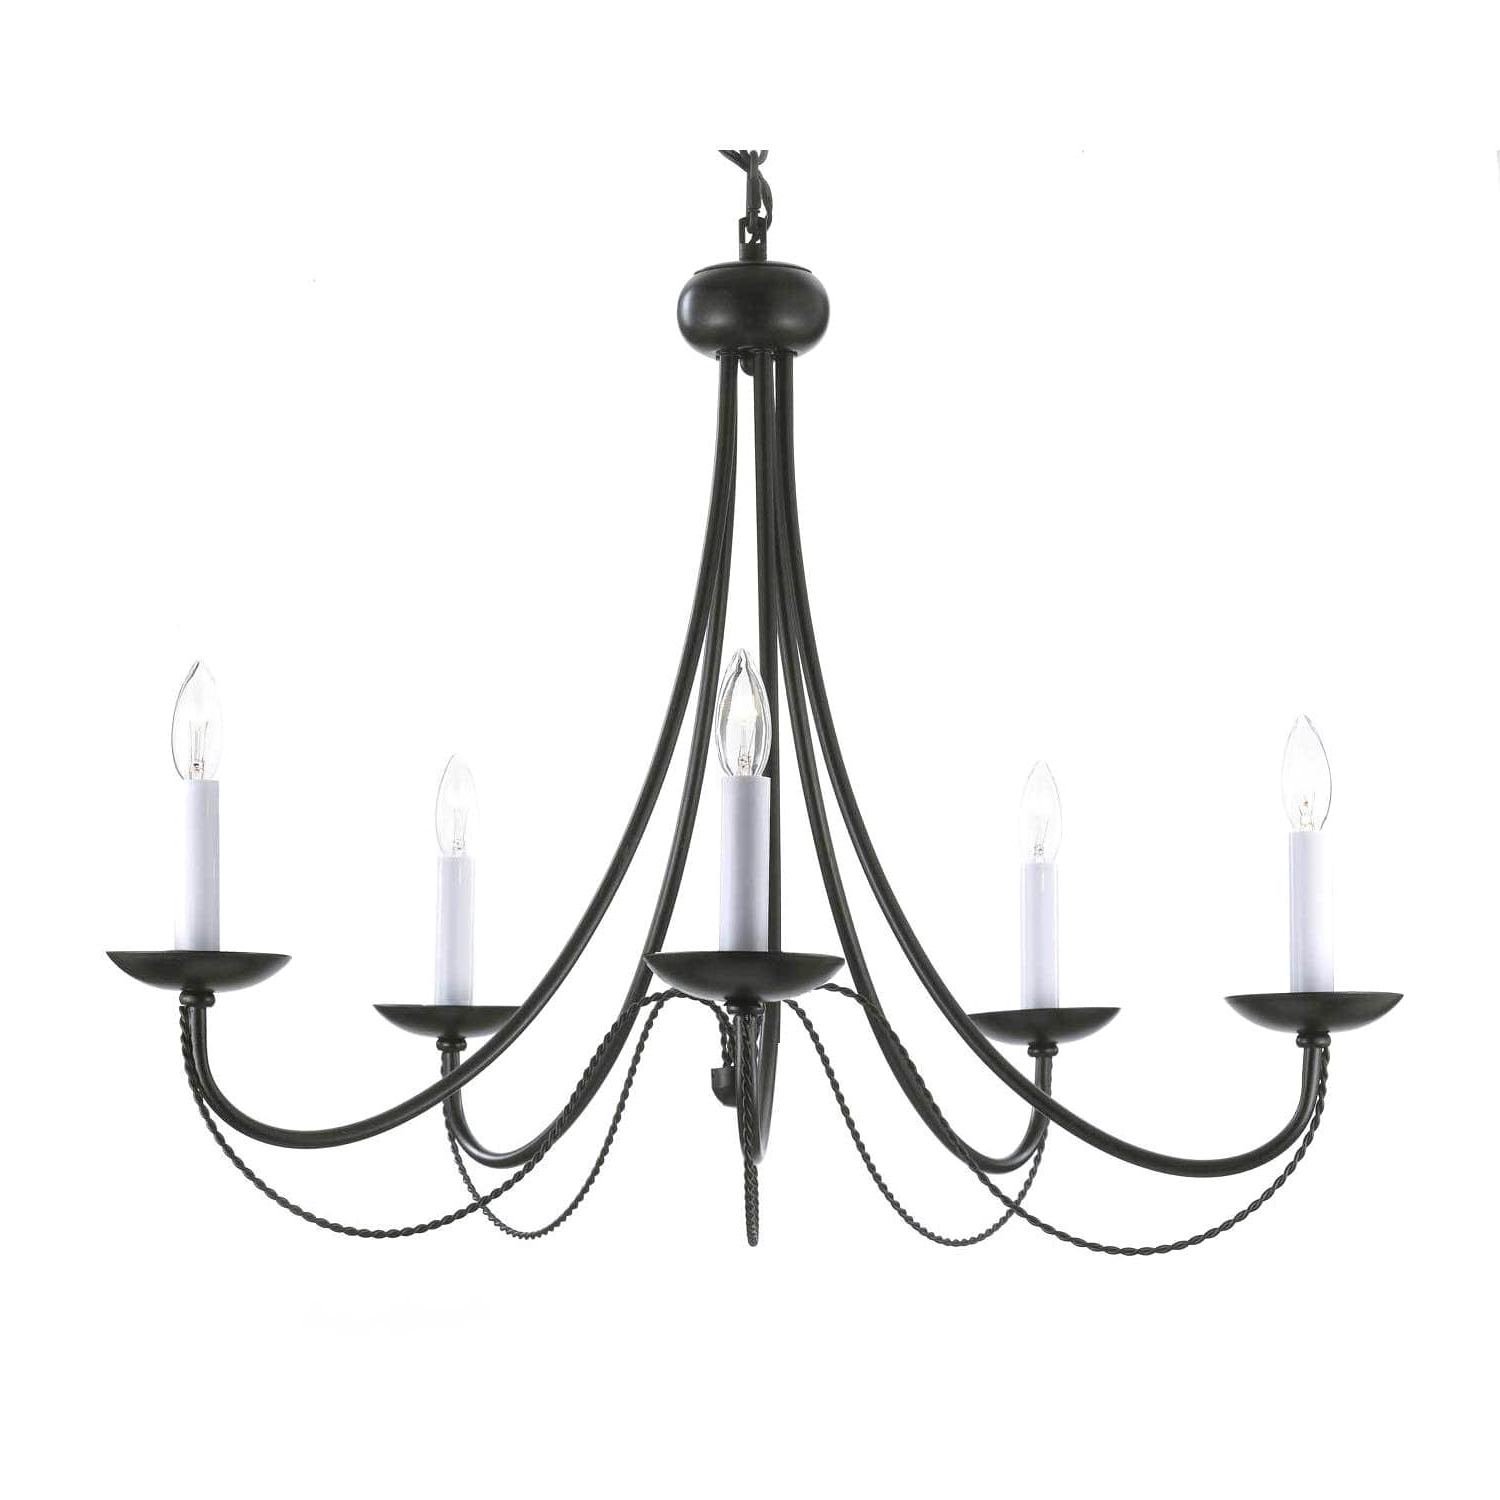 Gallery Versailles 5 Light Black Wrought Iron Chandelier – Free For 2018 Wrought Iron Chandelier (View 12 of 15)